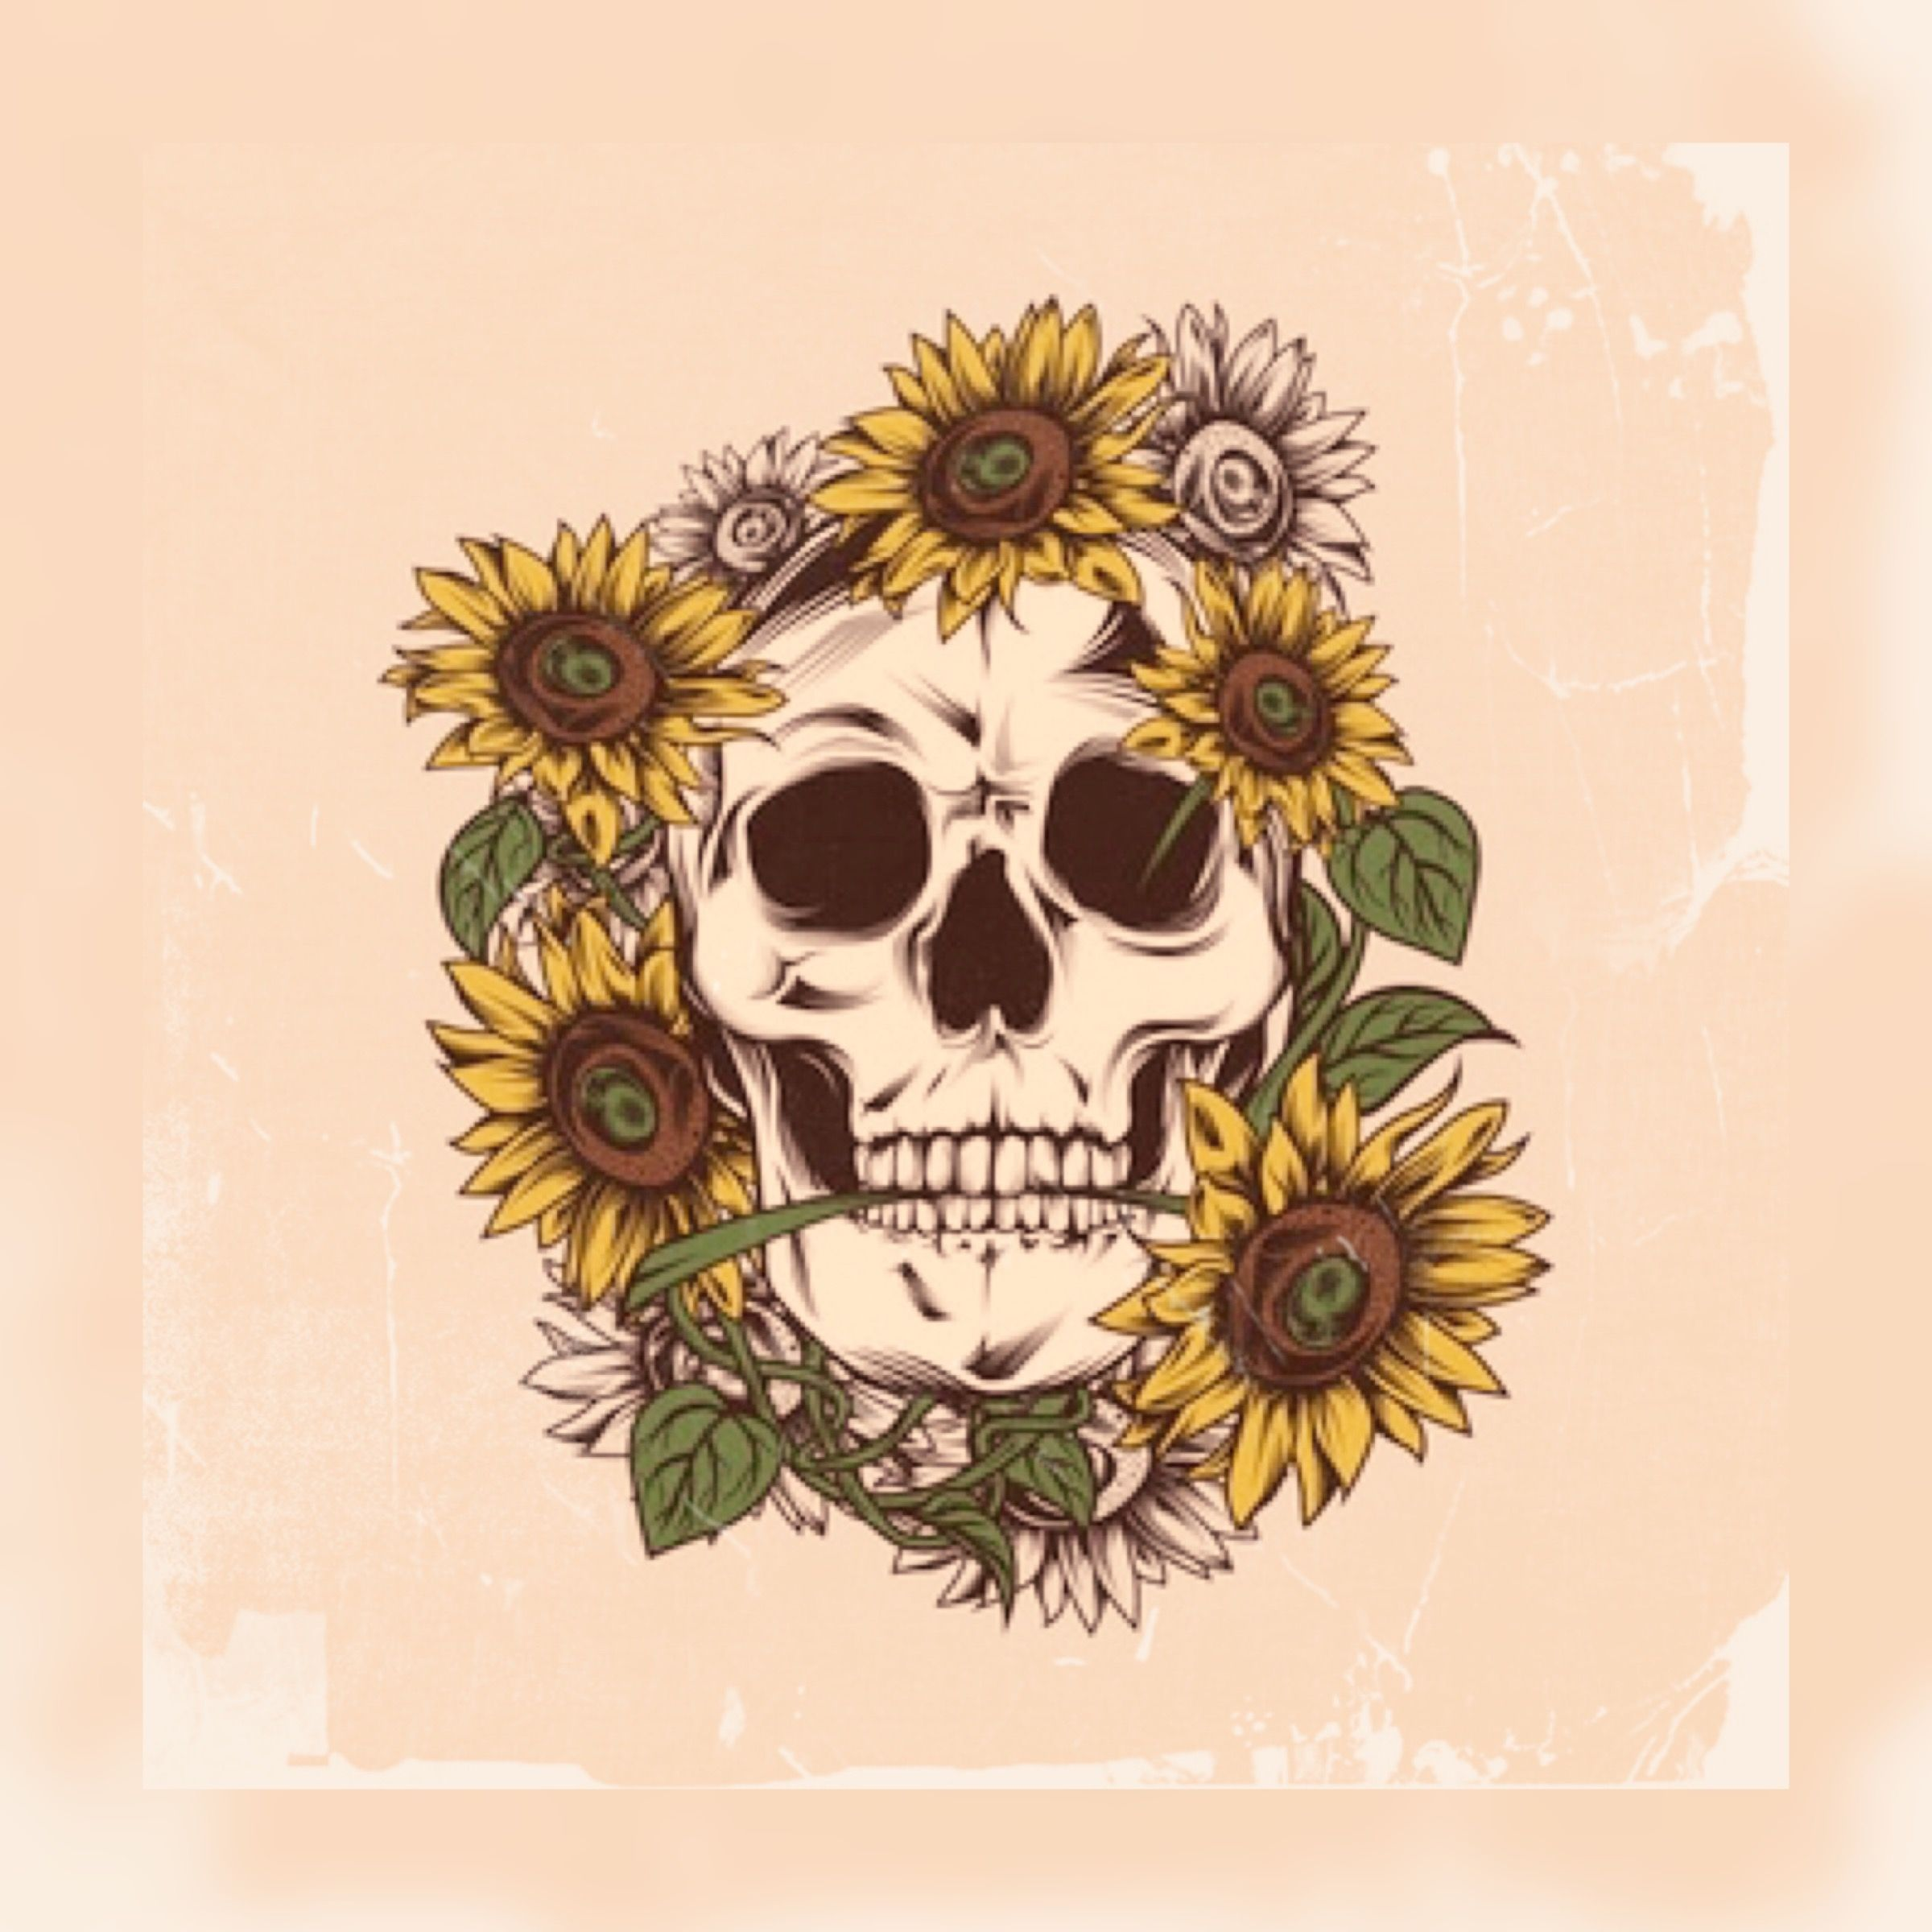 Sunflowers And Skull Wallpaper Grunge Cute Sunflower Art Print Skull Art Drawings